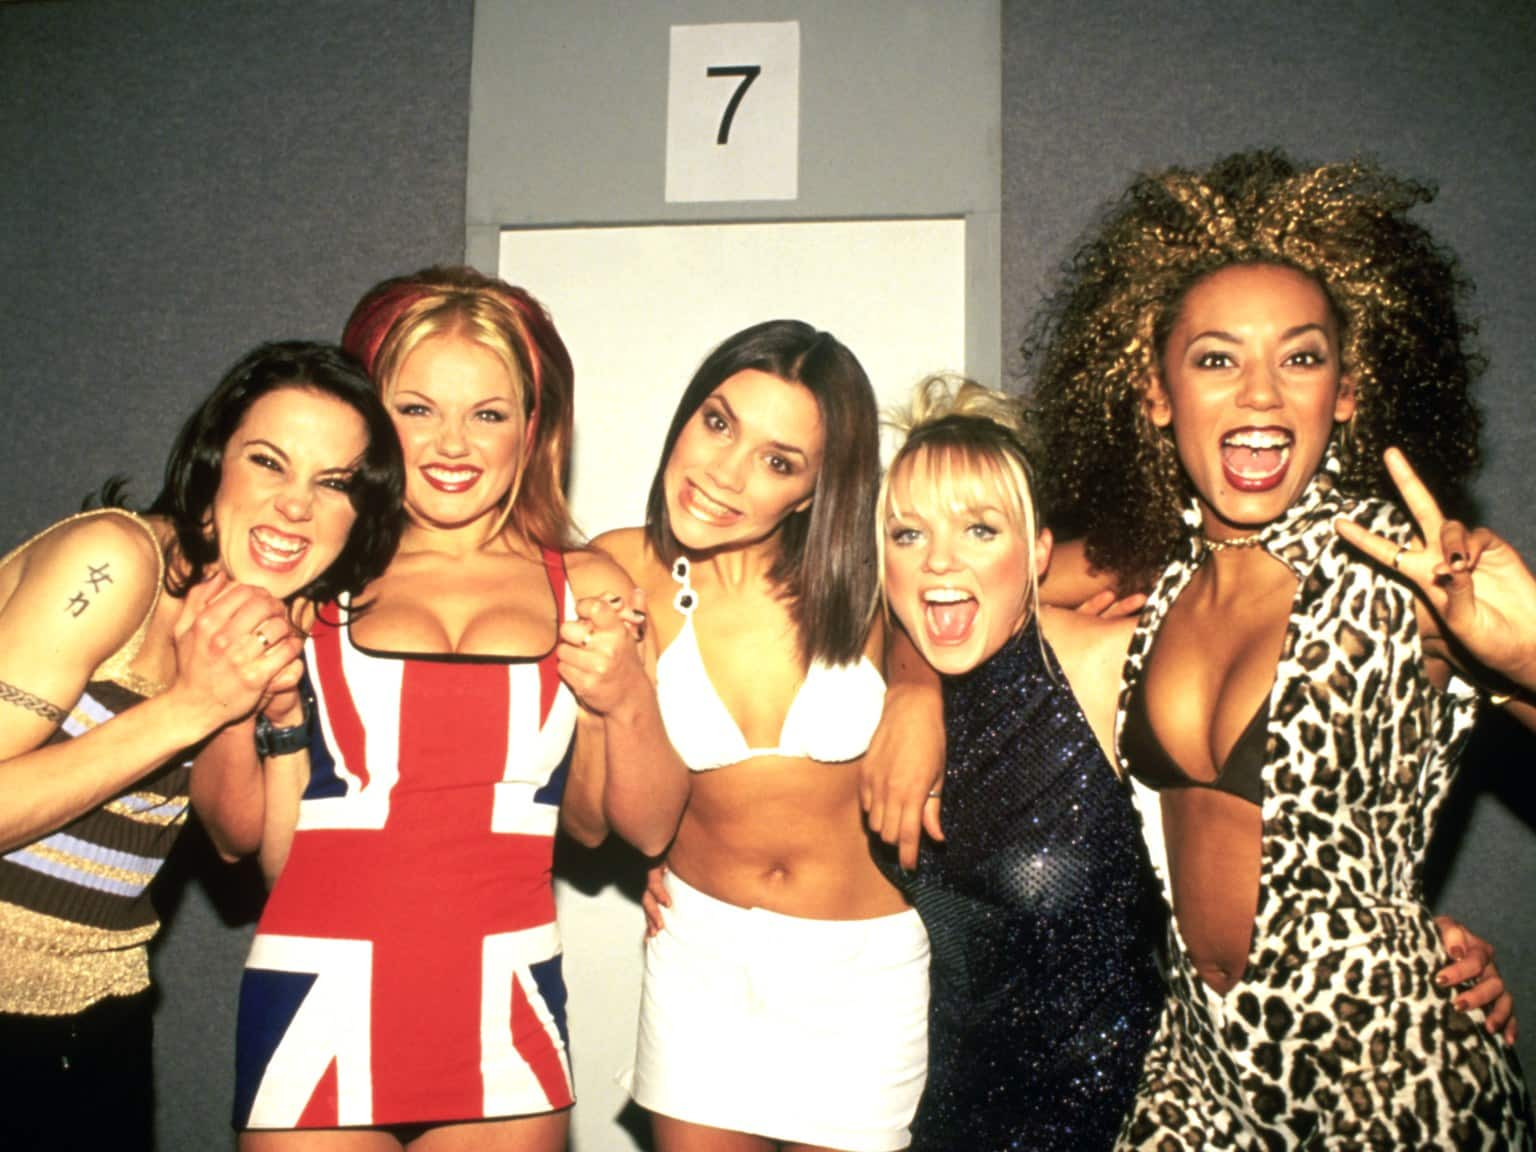 Las Spice Girls serán superhéroes en la pantalla grande ¡girl power!